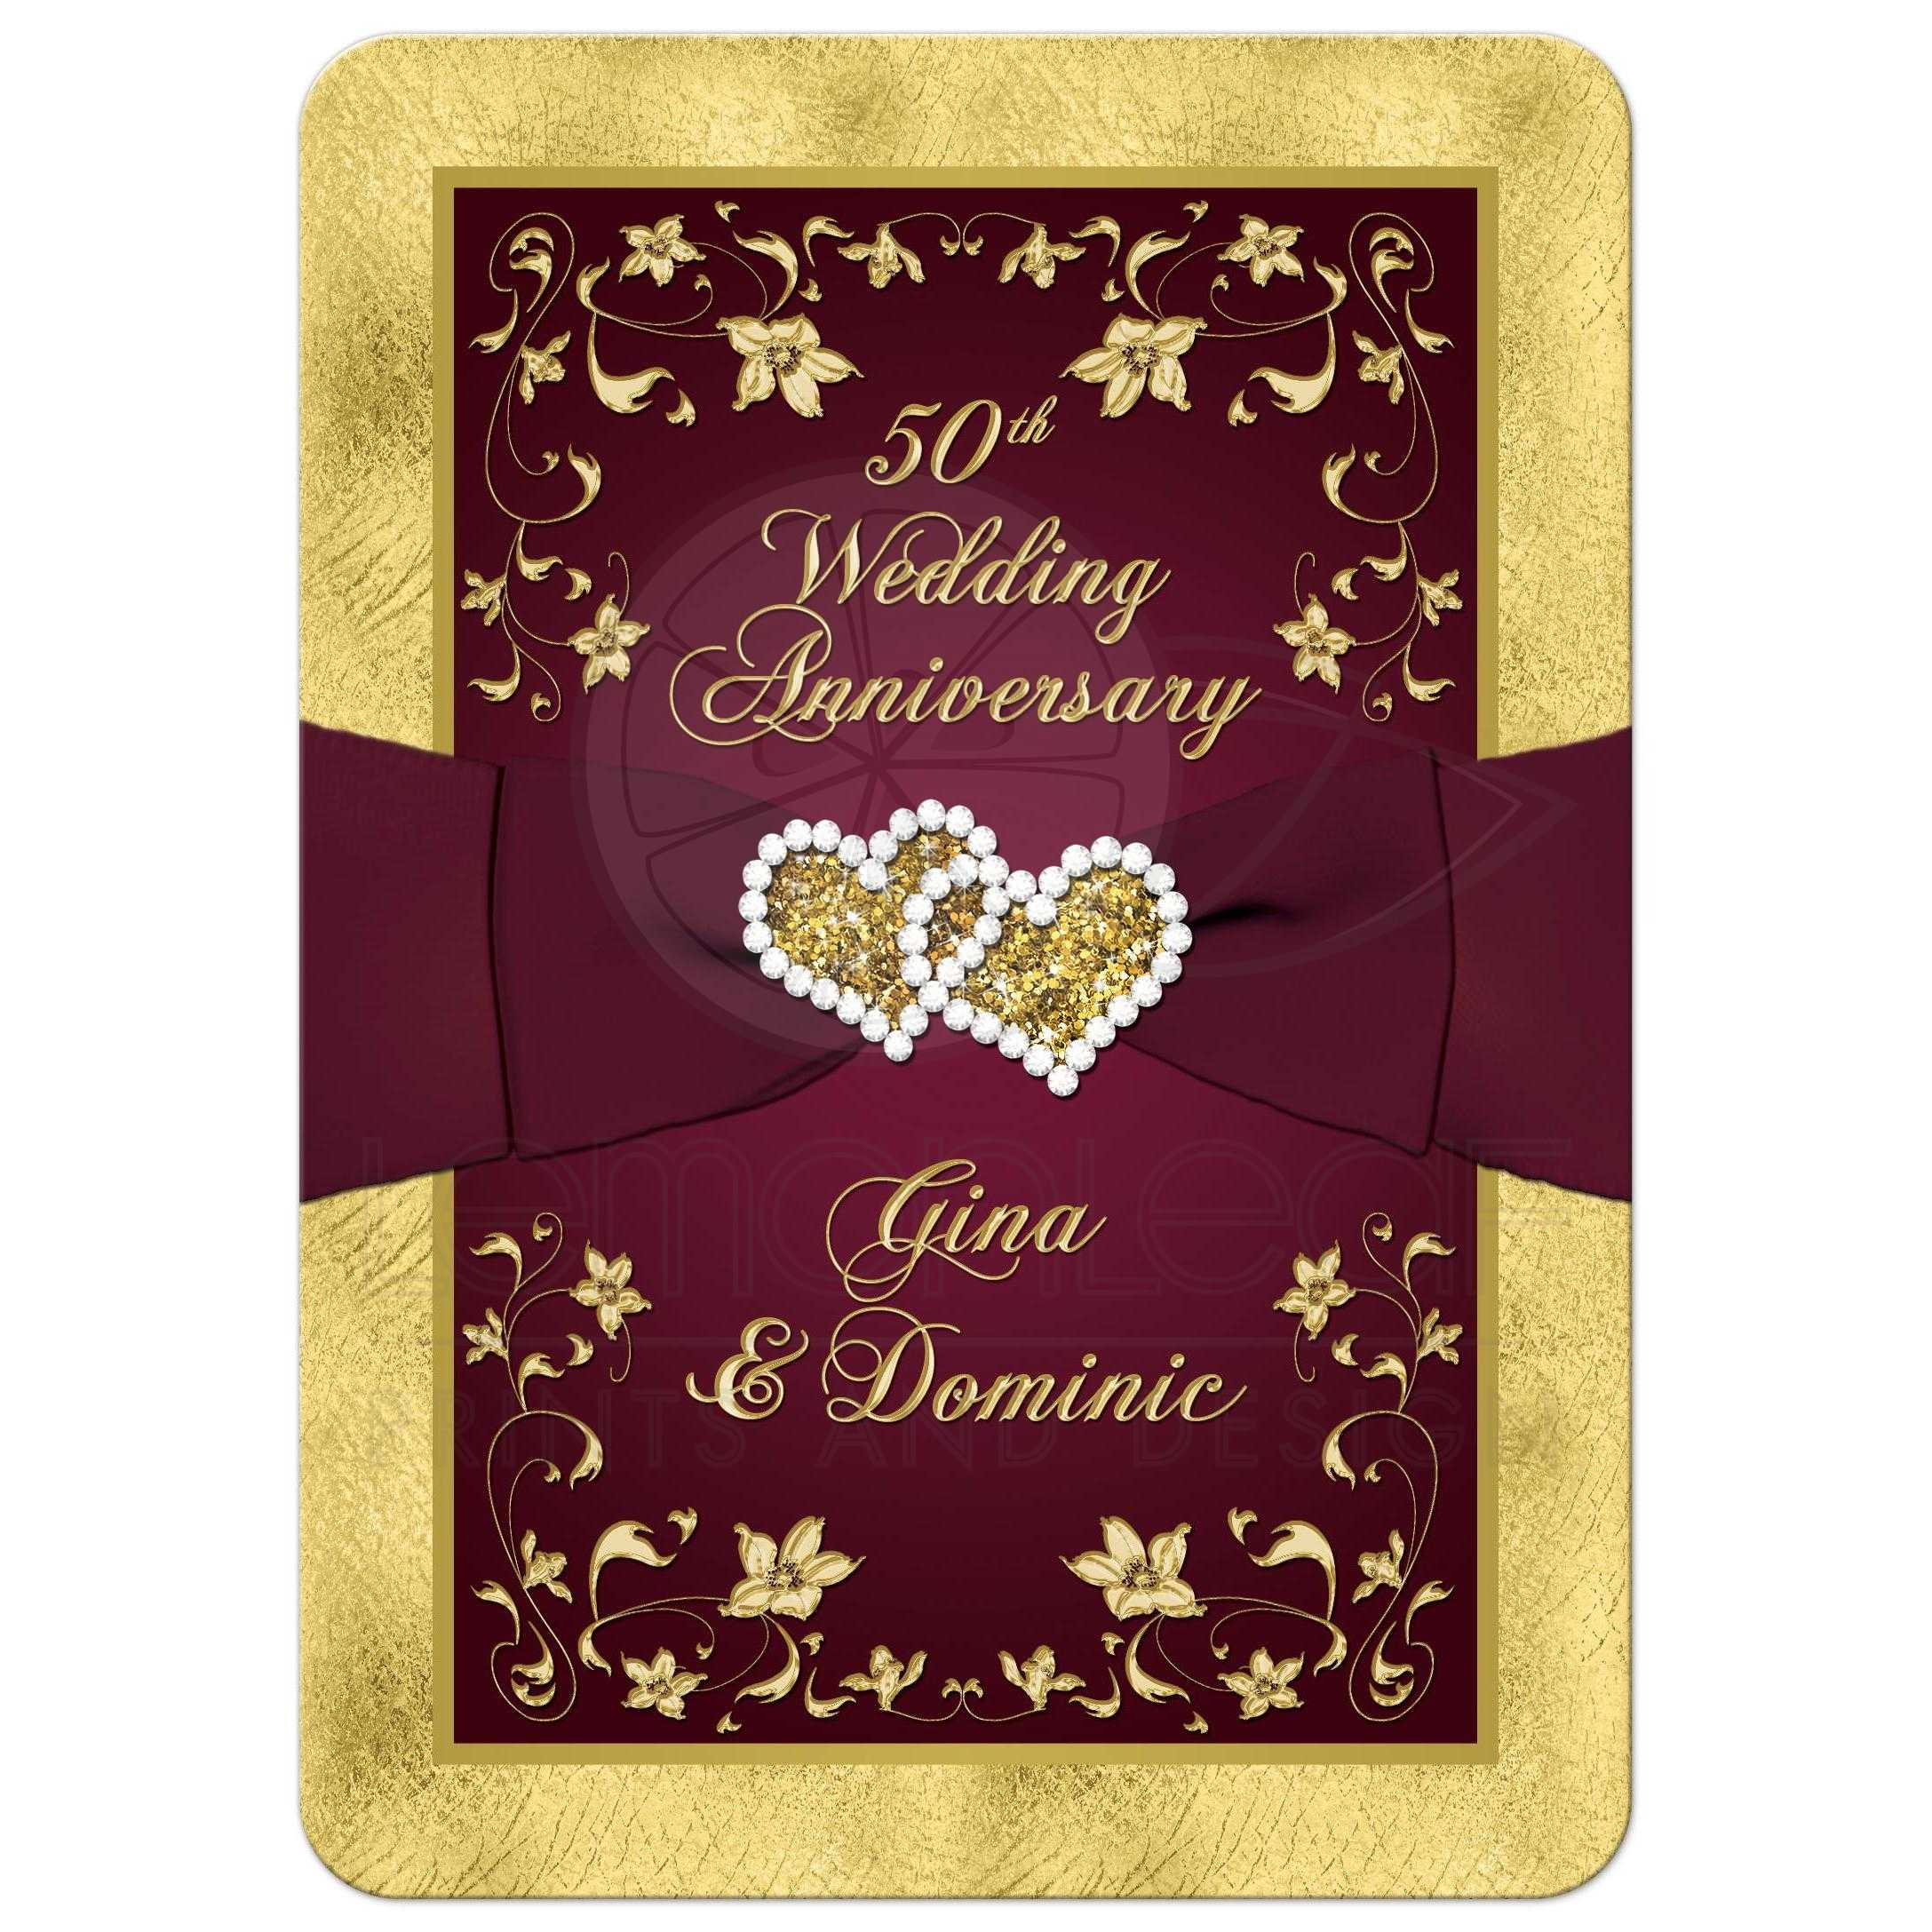 50th wedding anniversary invitation wine gold floral printed great burgundy wine and gold floral 50th wedding anniversary invitation with ribbon joined hearts stopboris Gallery